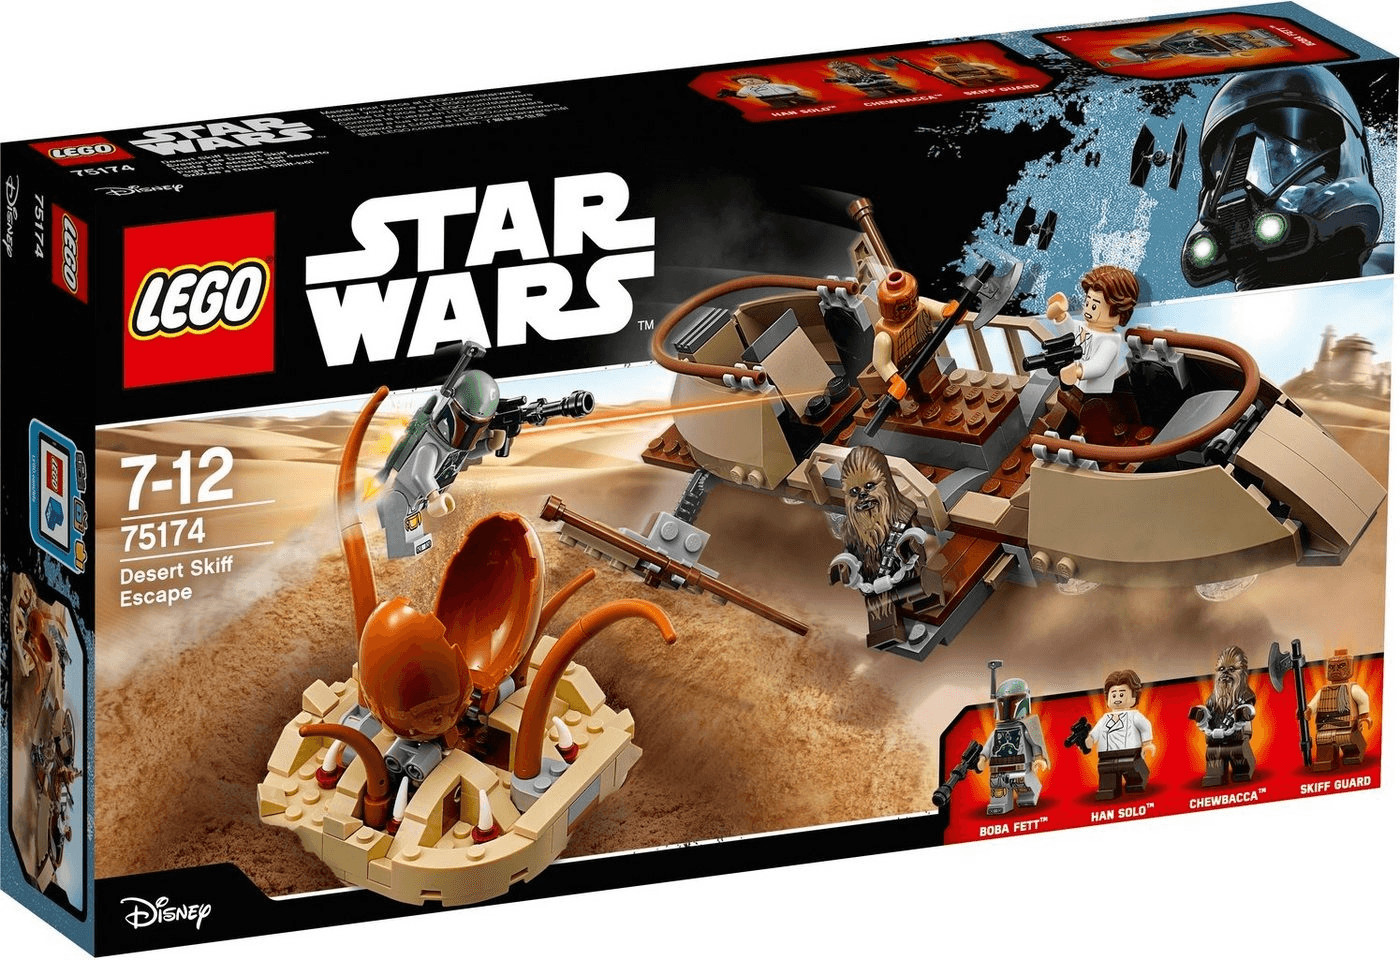 LEGO Star Wars - Desert Skiff Escape (75174)